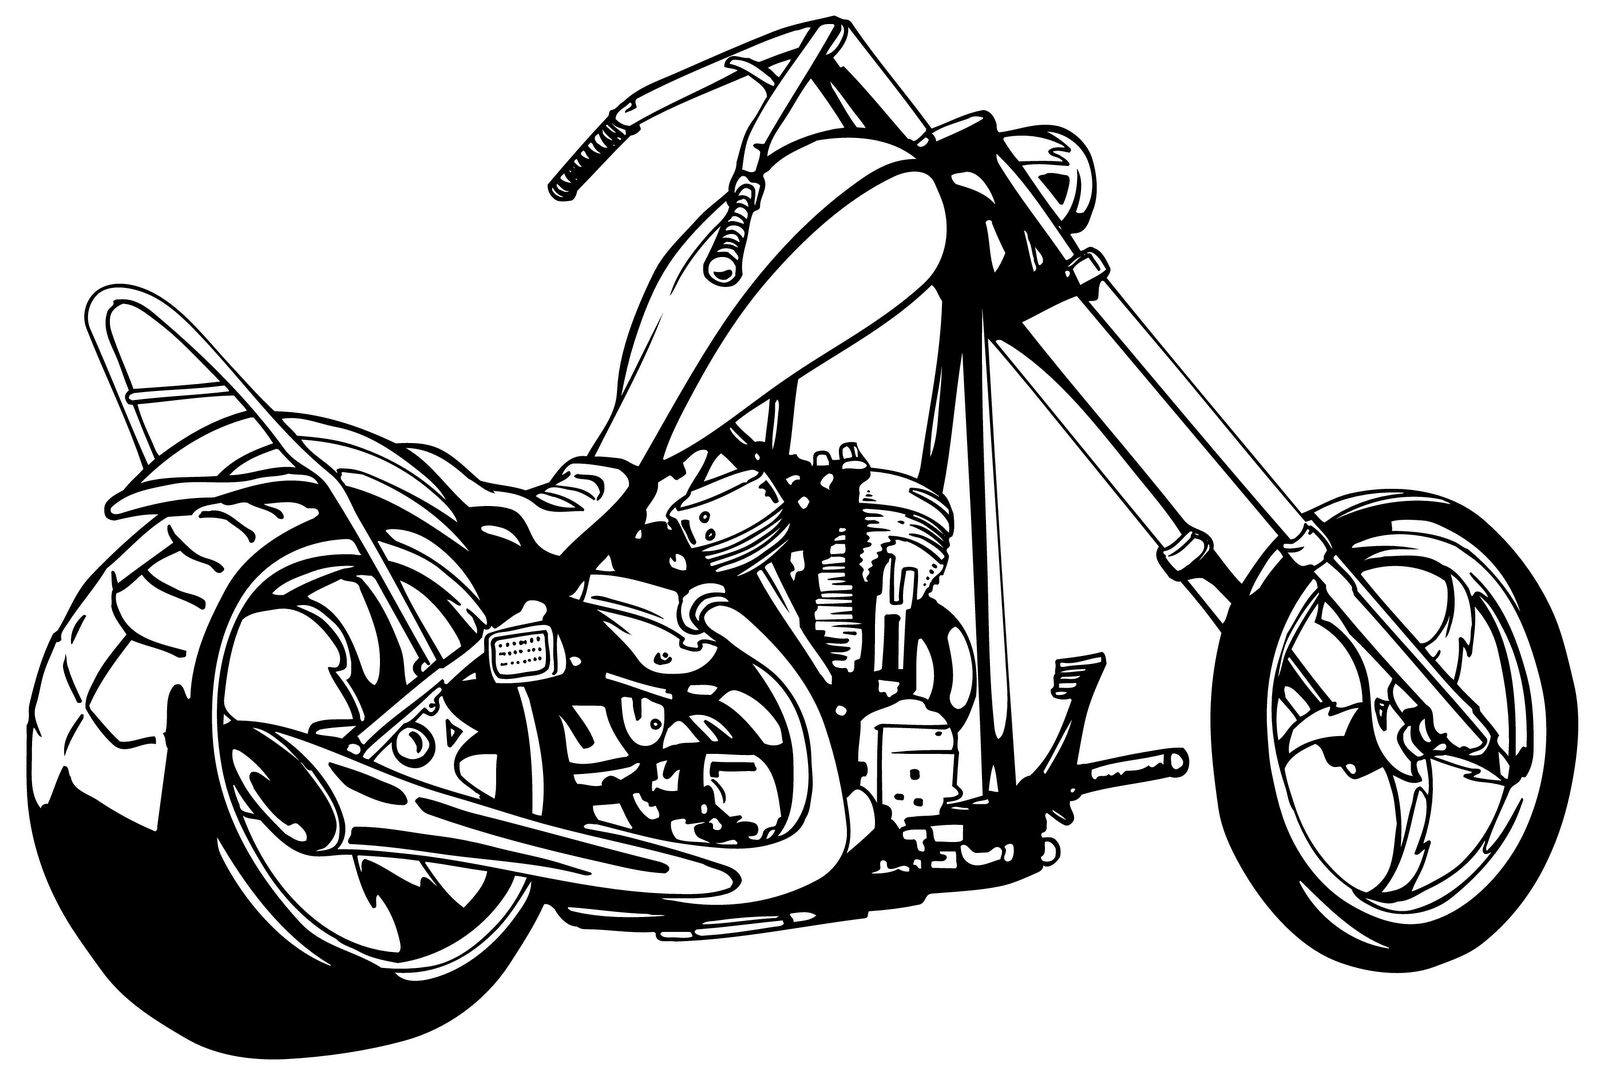 Clipart related to harley-davidson motorcycles at any level picture free download Triumph Motorcycles Ltd Harley-Davidson Chopper Clip art ... picture free download